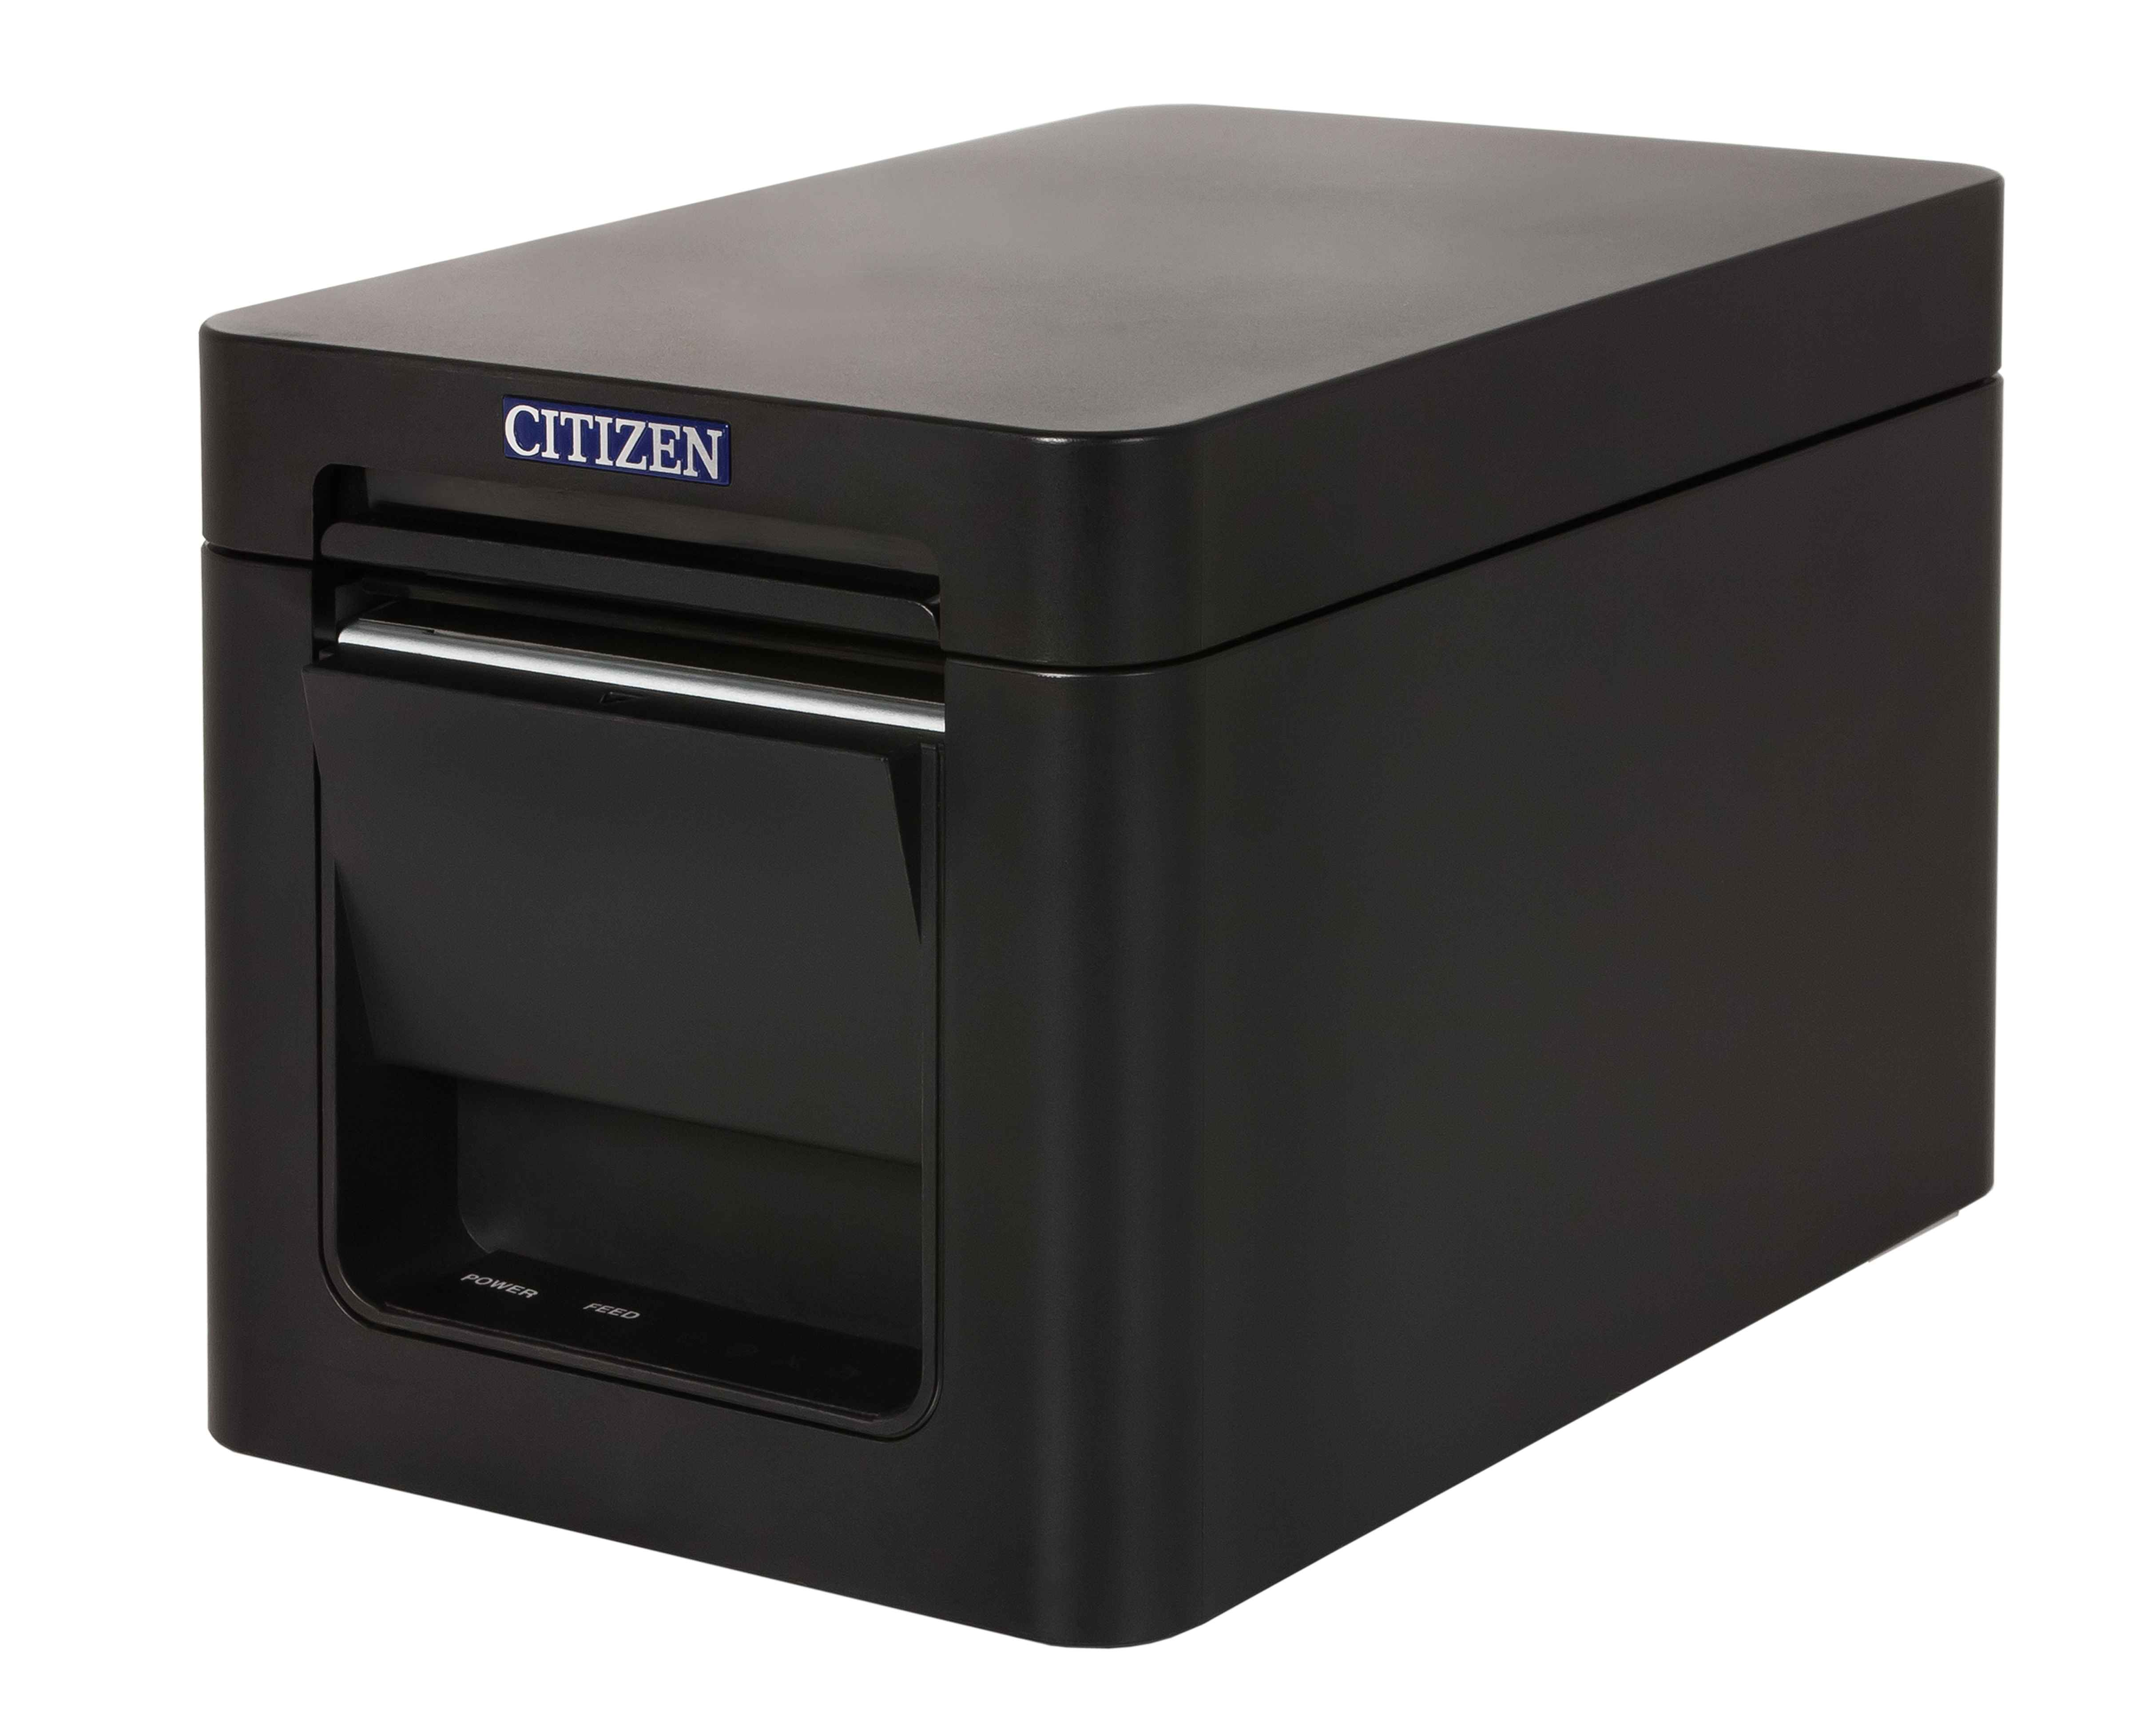 Принтер Citizen CT-S251